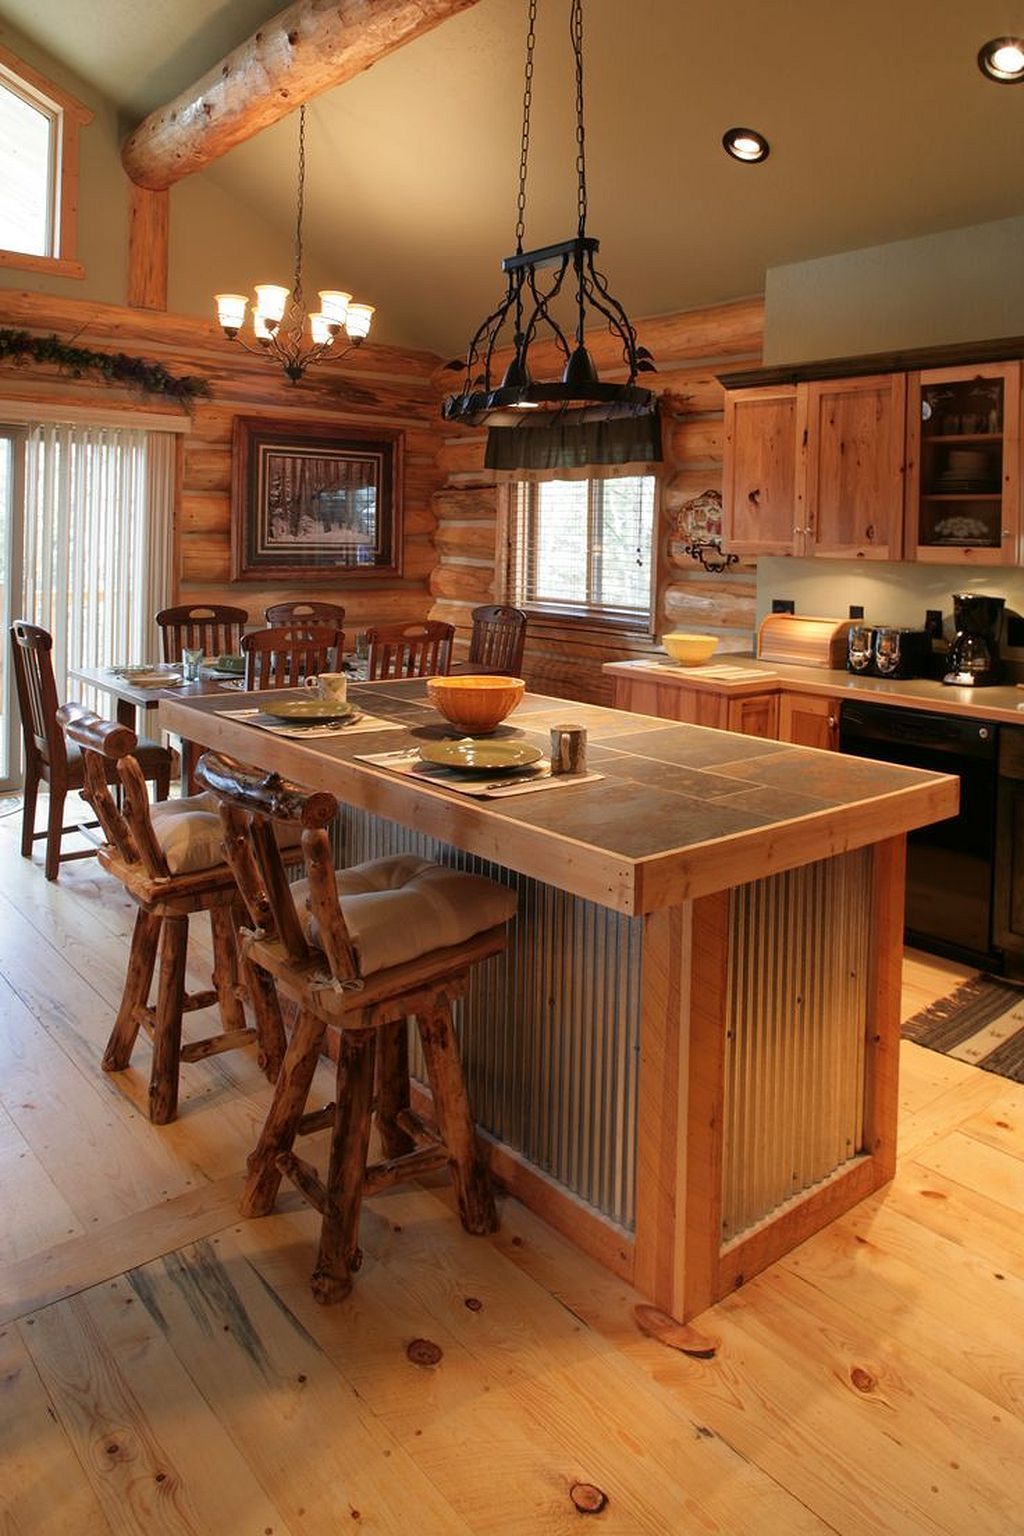 homemade kitchen island ideas simple rustic homemade kitchen islands ideas 9 homemade kitchen island small rustic kitchens 9356